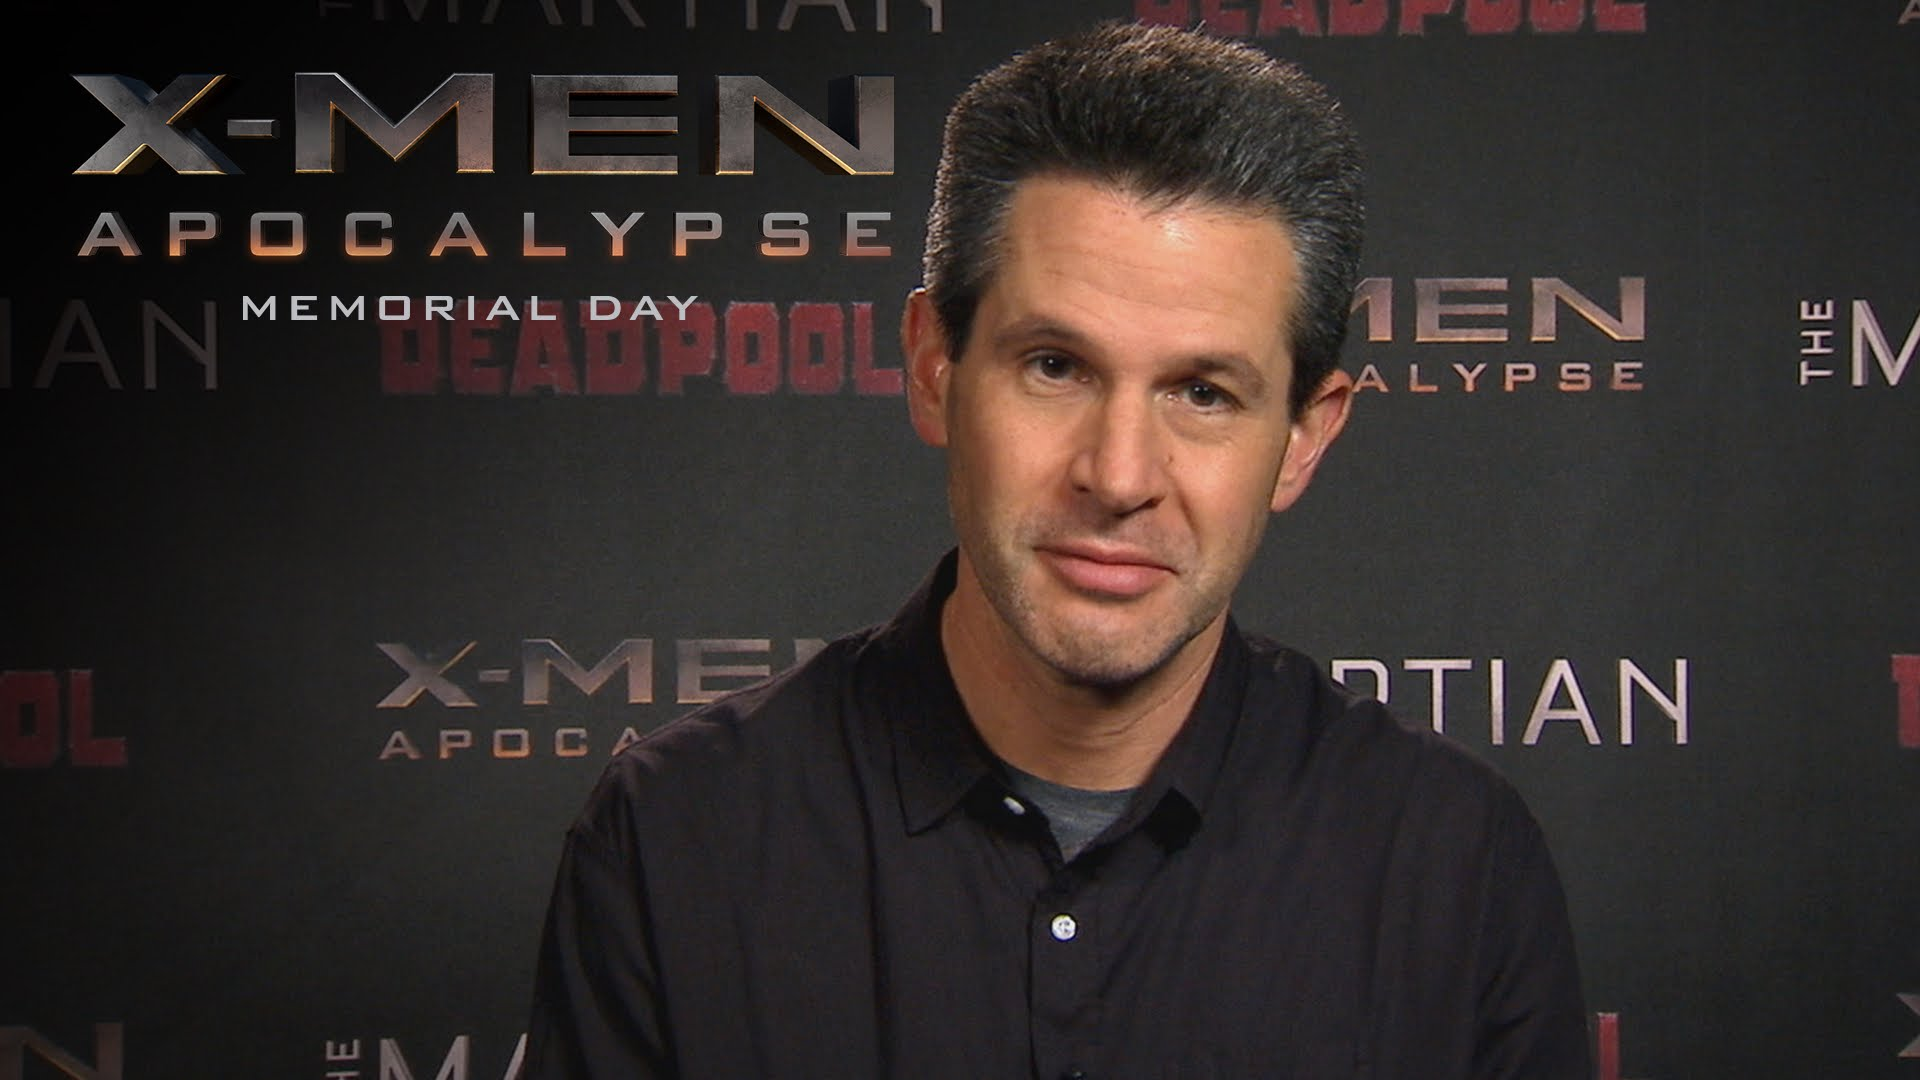 090c685a8dd17 Kinberg is a natural choice to write and direct the next X-Men movie as he  has kind of been the God Father of the X-Men franchise sense X-Men  Last  Stand ...